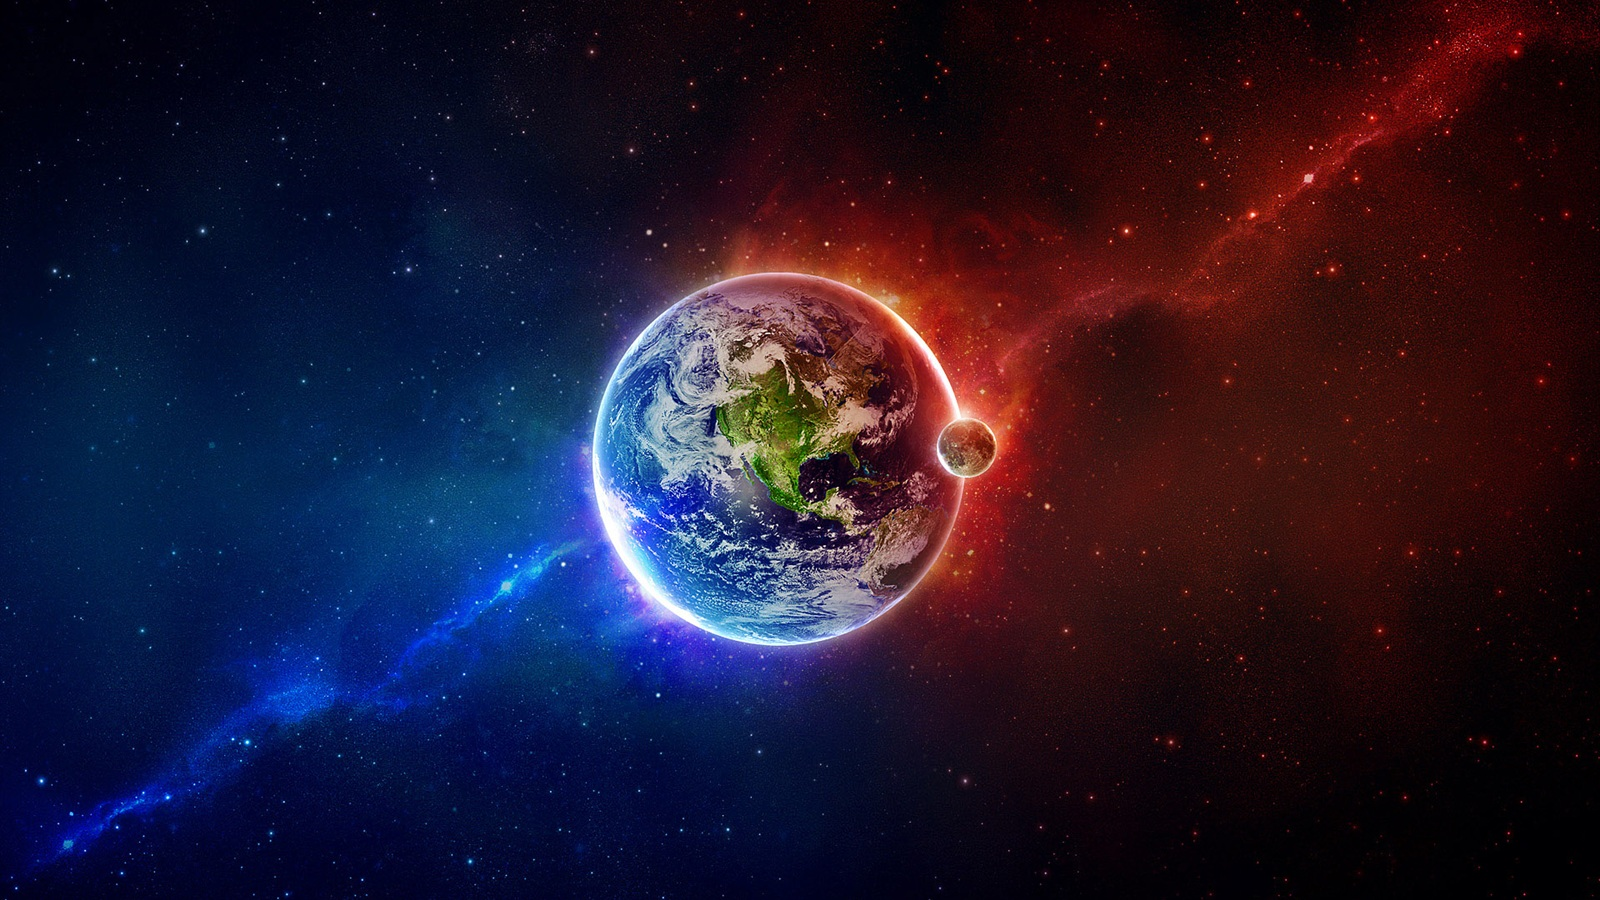 Earth And The Moon Wallpaper  1600x900 Resolution Download Best WallpaperNet